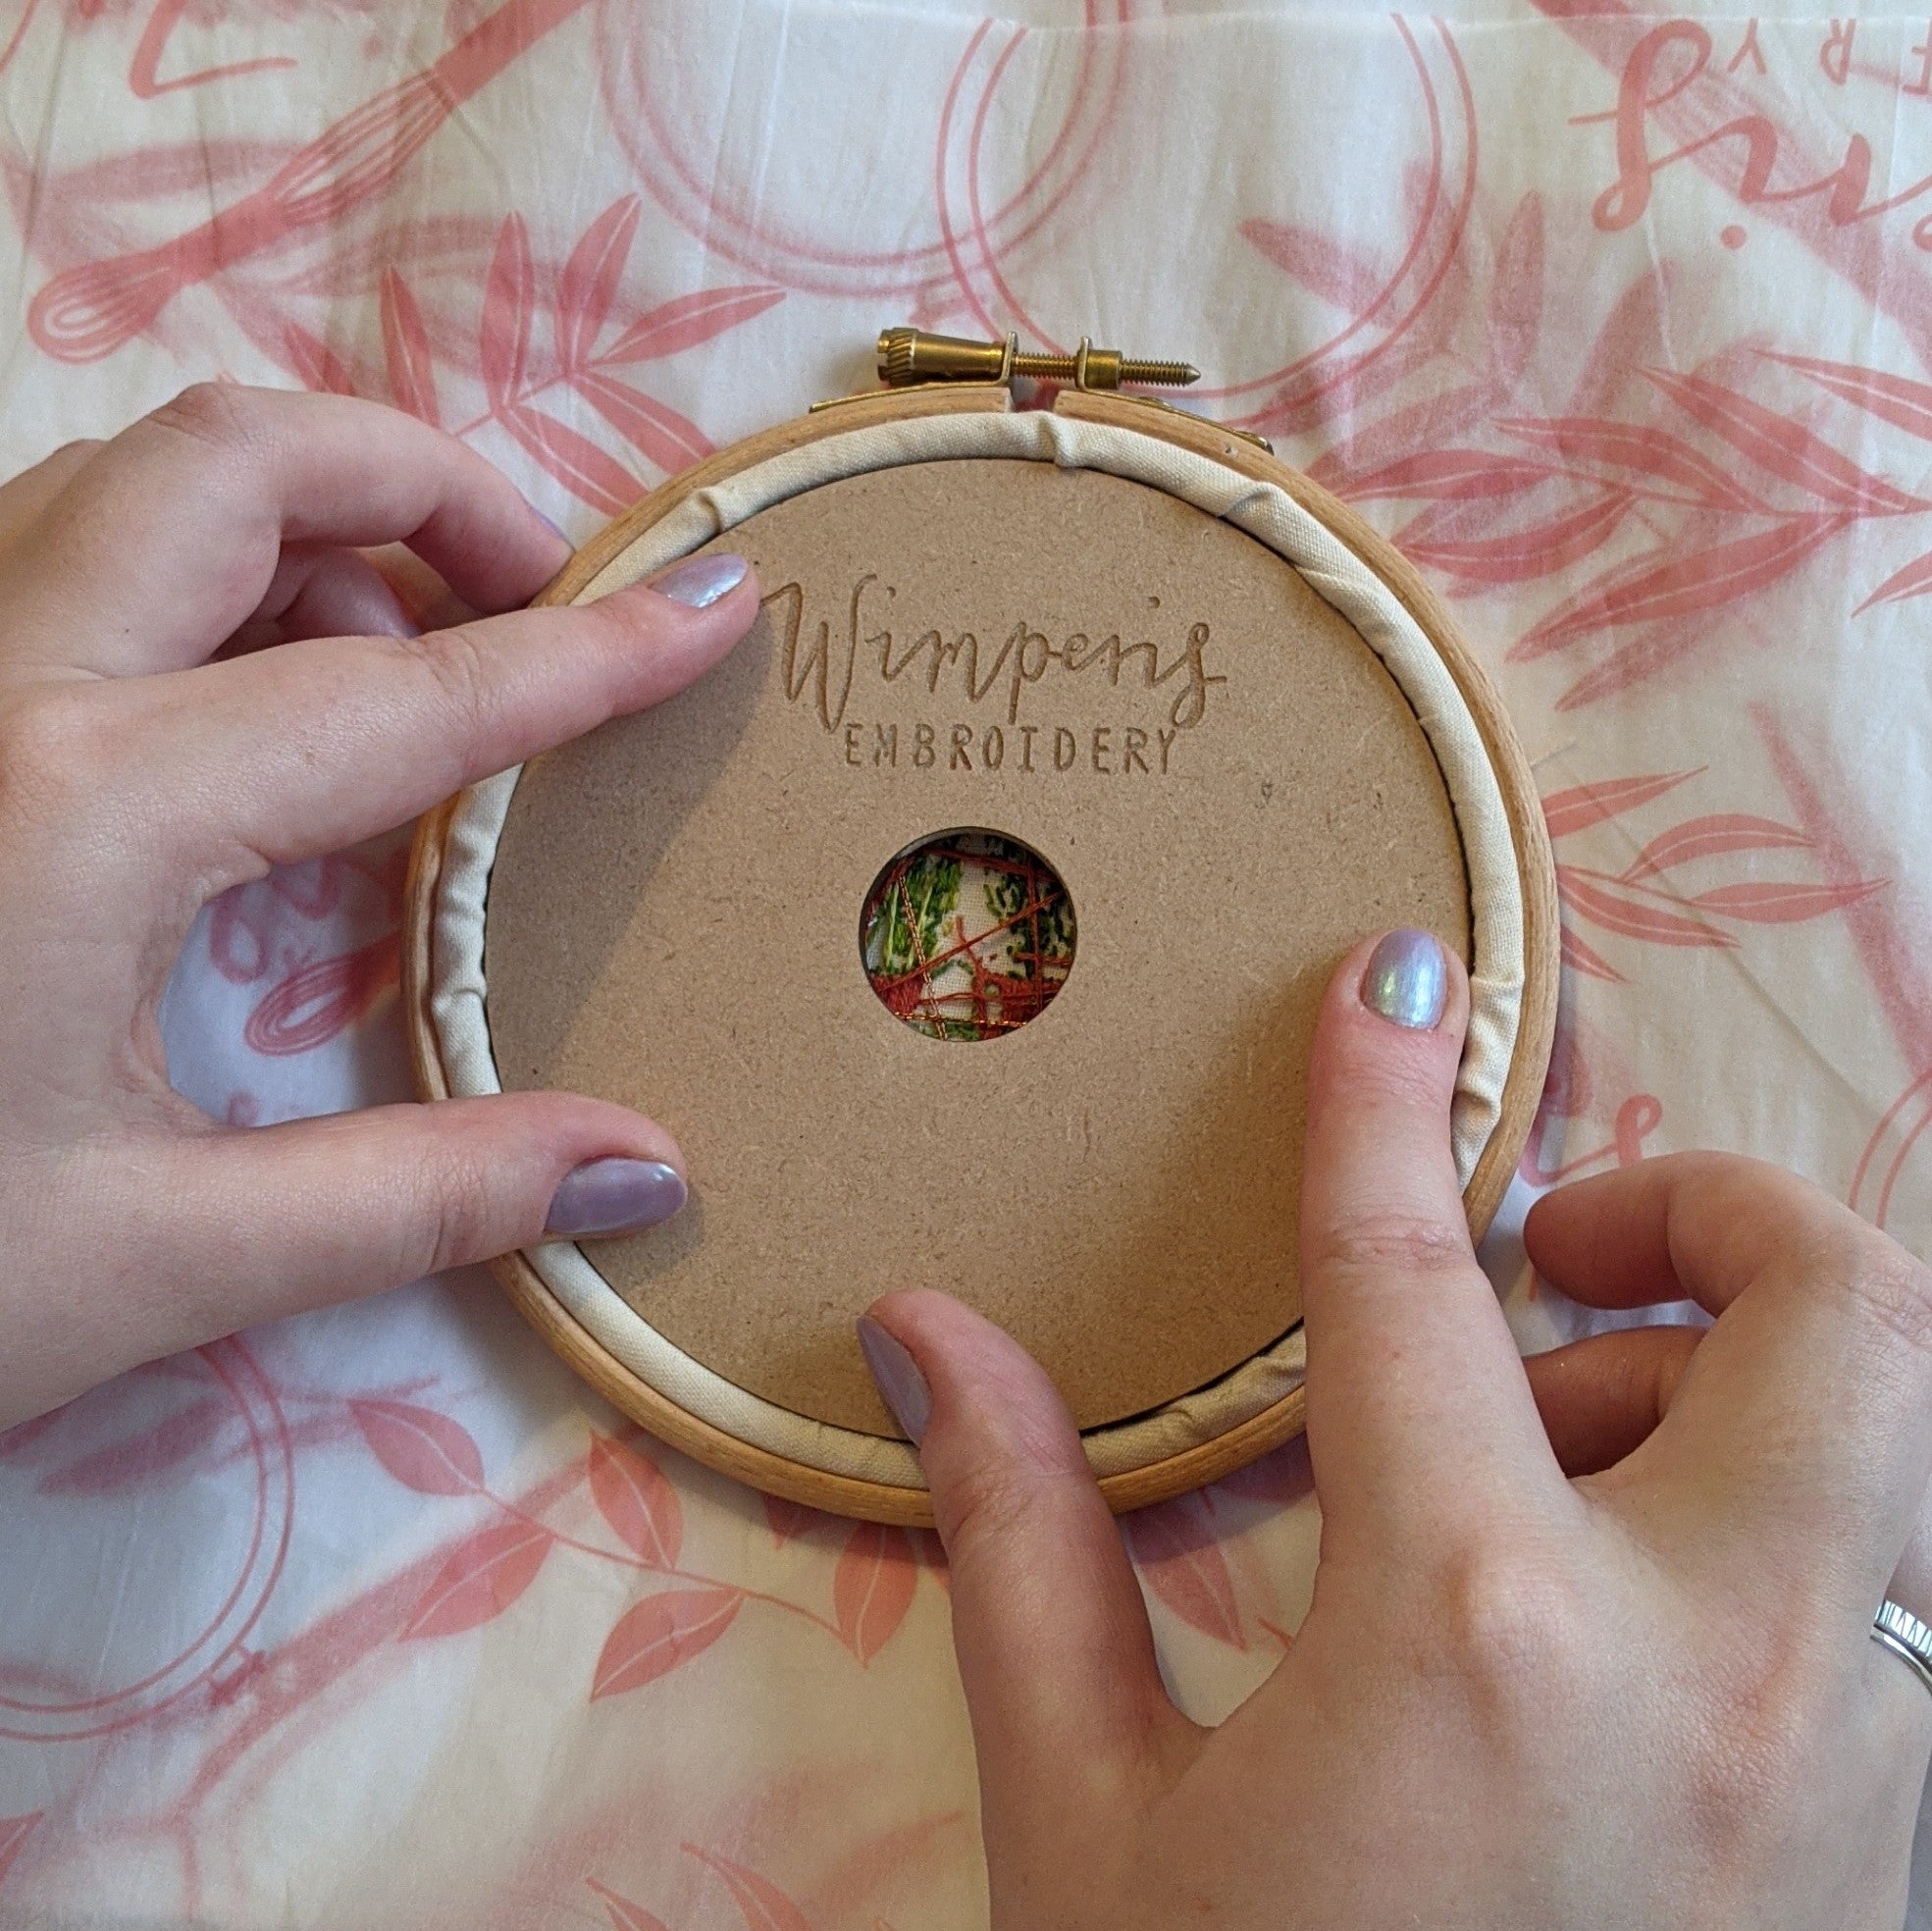 The Gamechanger - The revolutionary backing disk to finish and hang embroidery hoops.